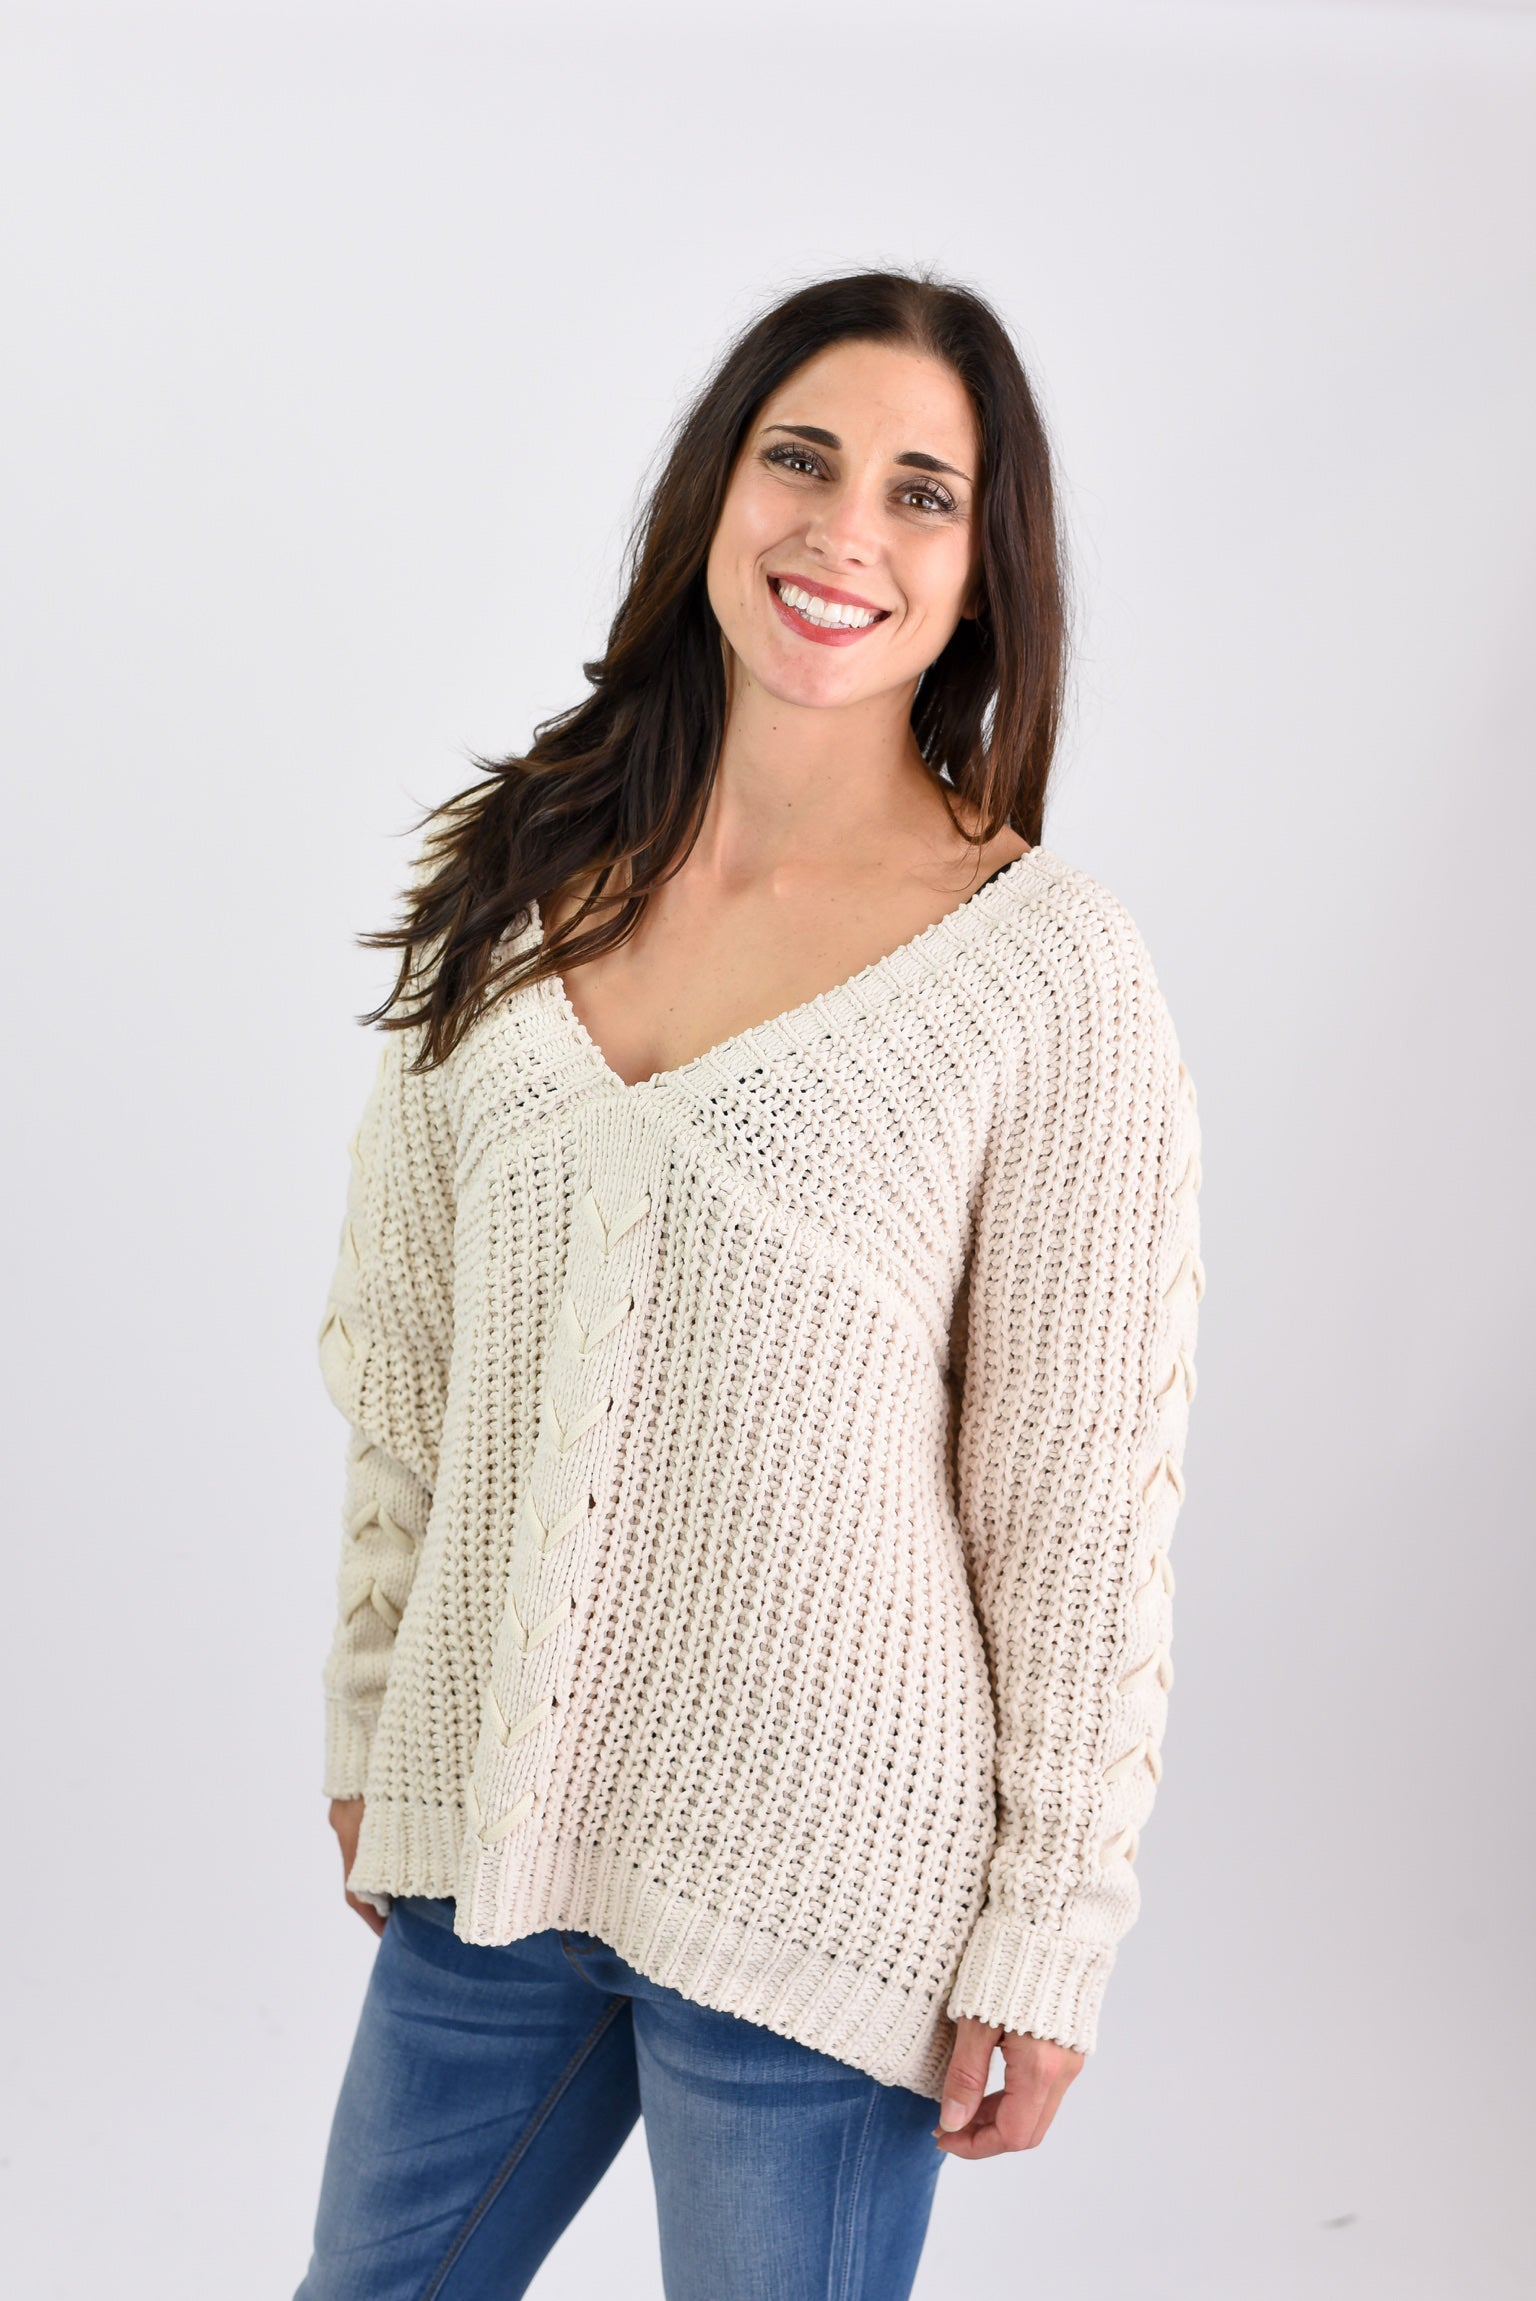 Breathtaking Braided Double V- Neck Chenille Cream Sweater